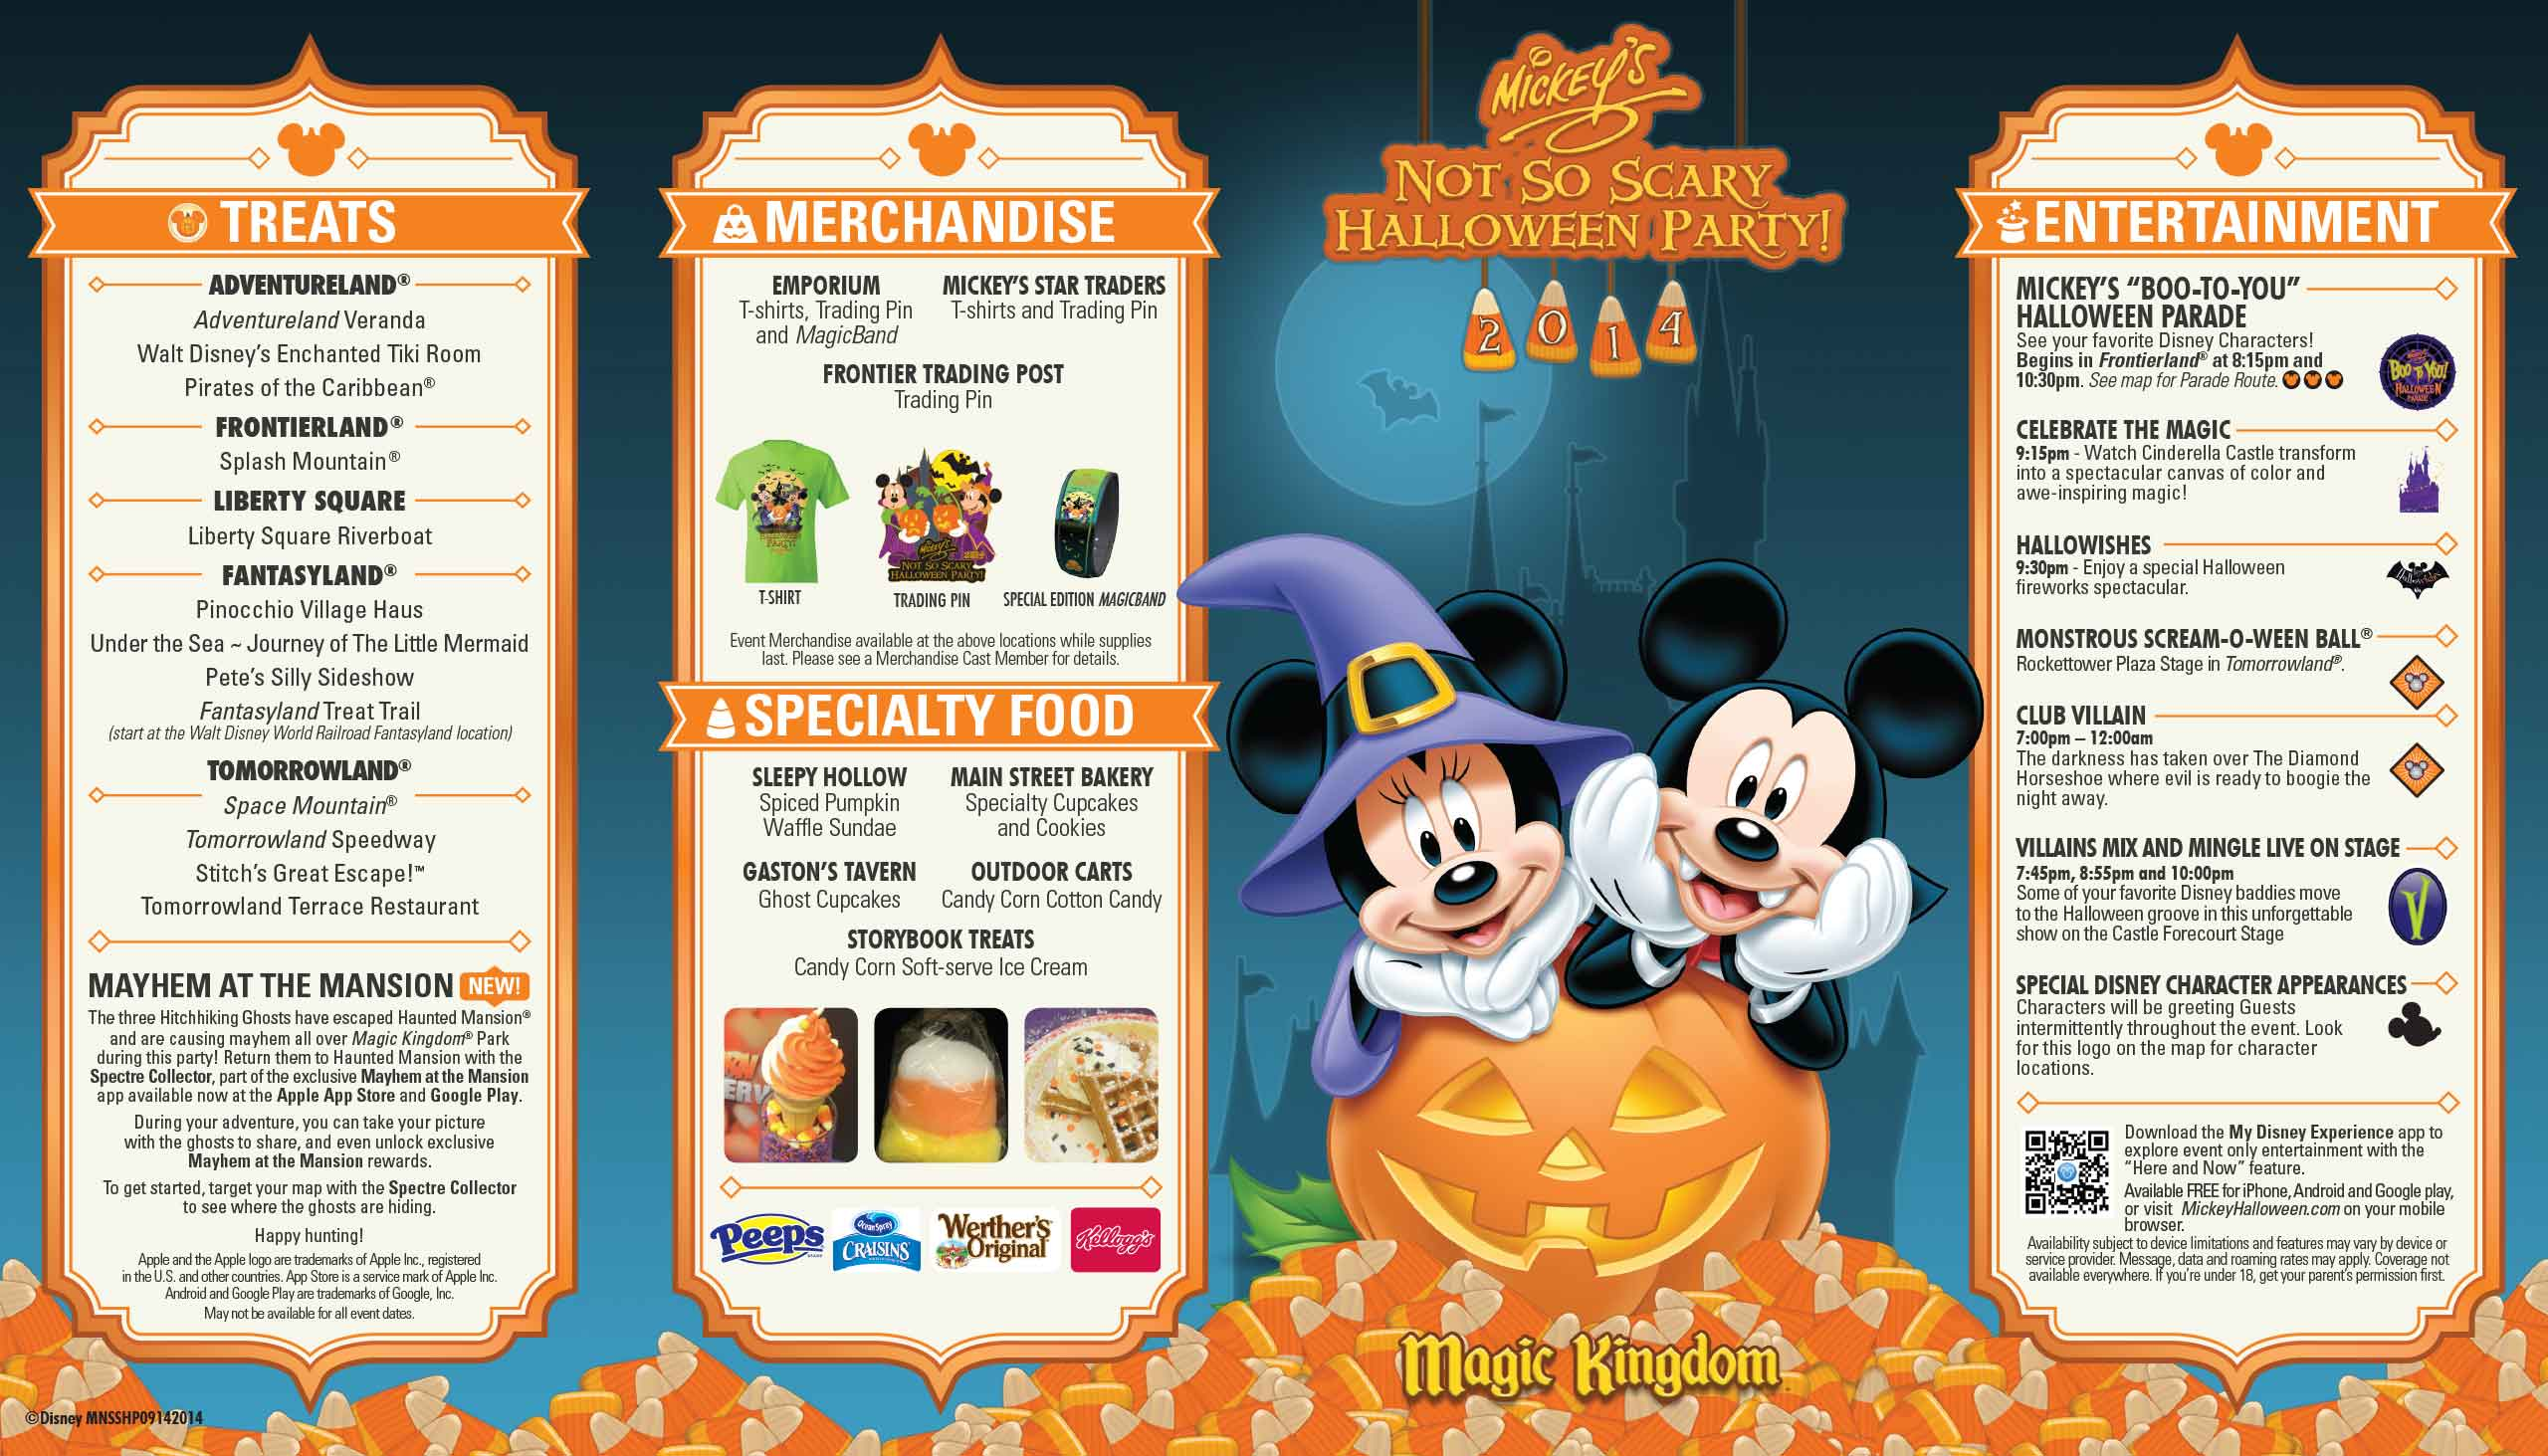 the complete guide to mickey's not so scary halloween party – guru